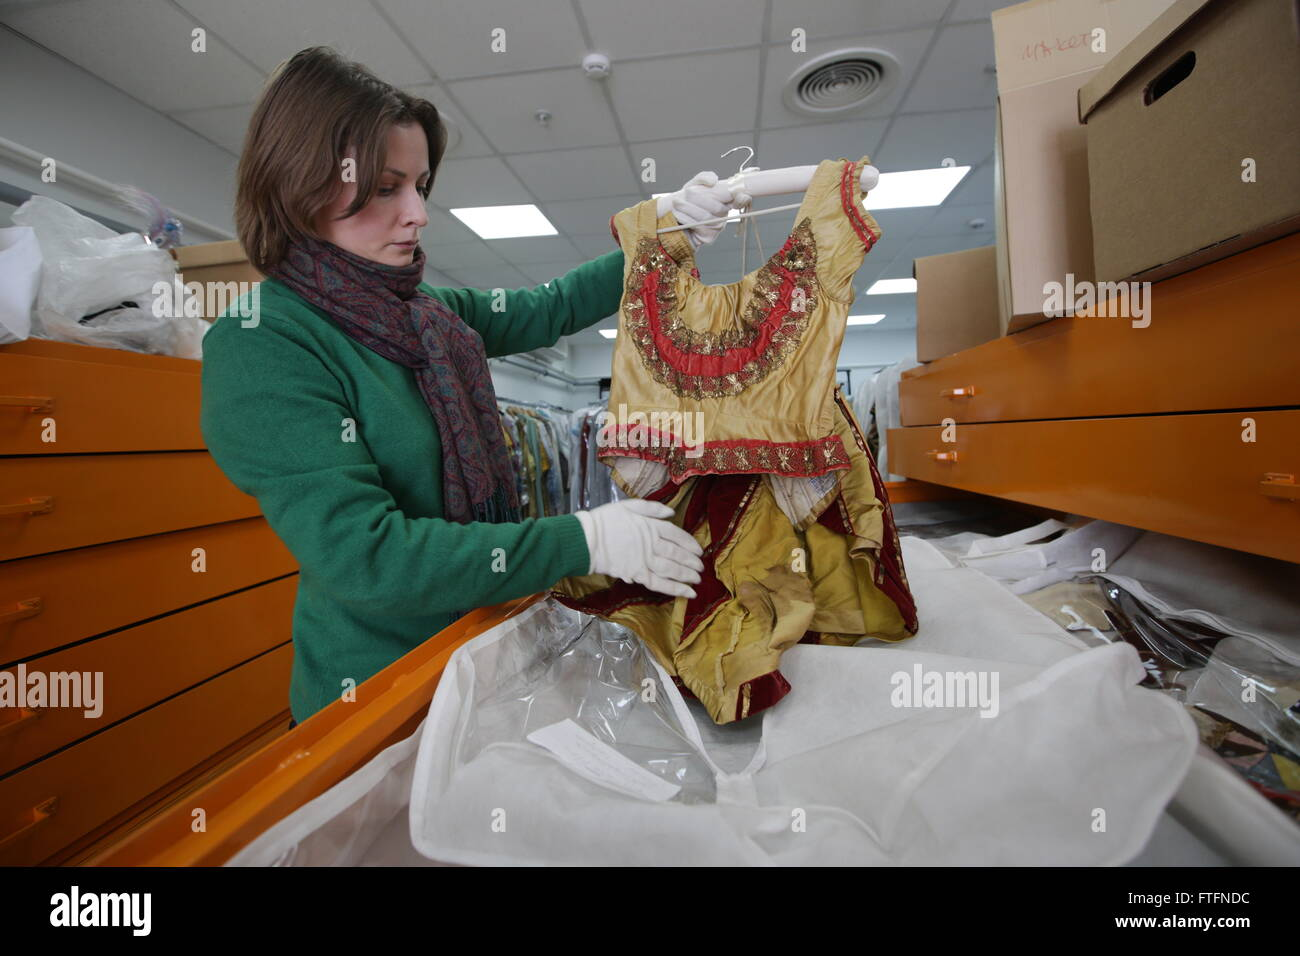 MOSCOW, RUSSIA. MARCH 23, 2016. Bolshoi researcher Anastasia Belevich shows a dress worn by ballet dancer Anna Sobeshchanskaya Stock Photo